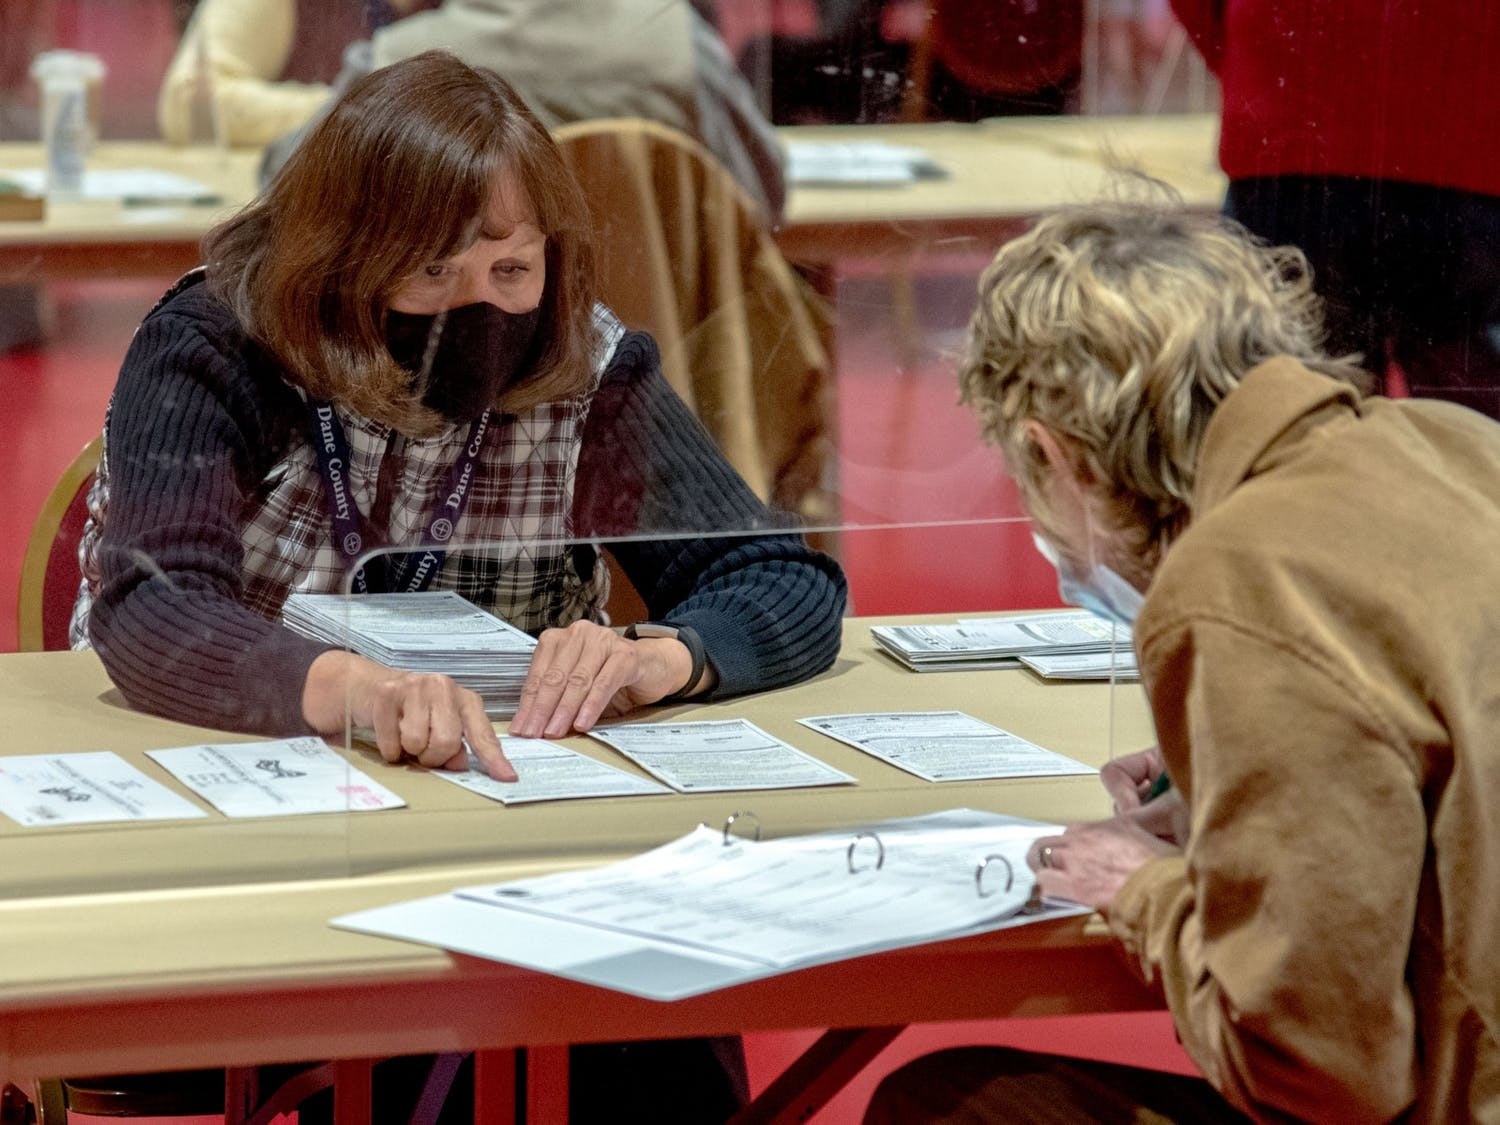 The state certified its election results from the Nov. 3 general election following a partial recount and pressure by Republicans to invalidate voting results within Wisconsin.